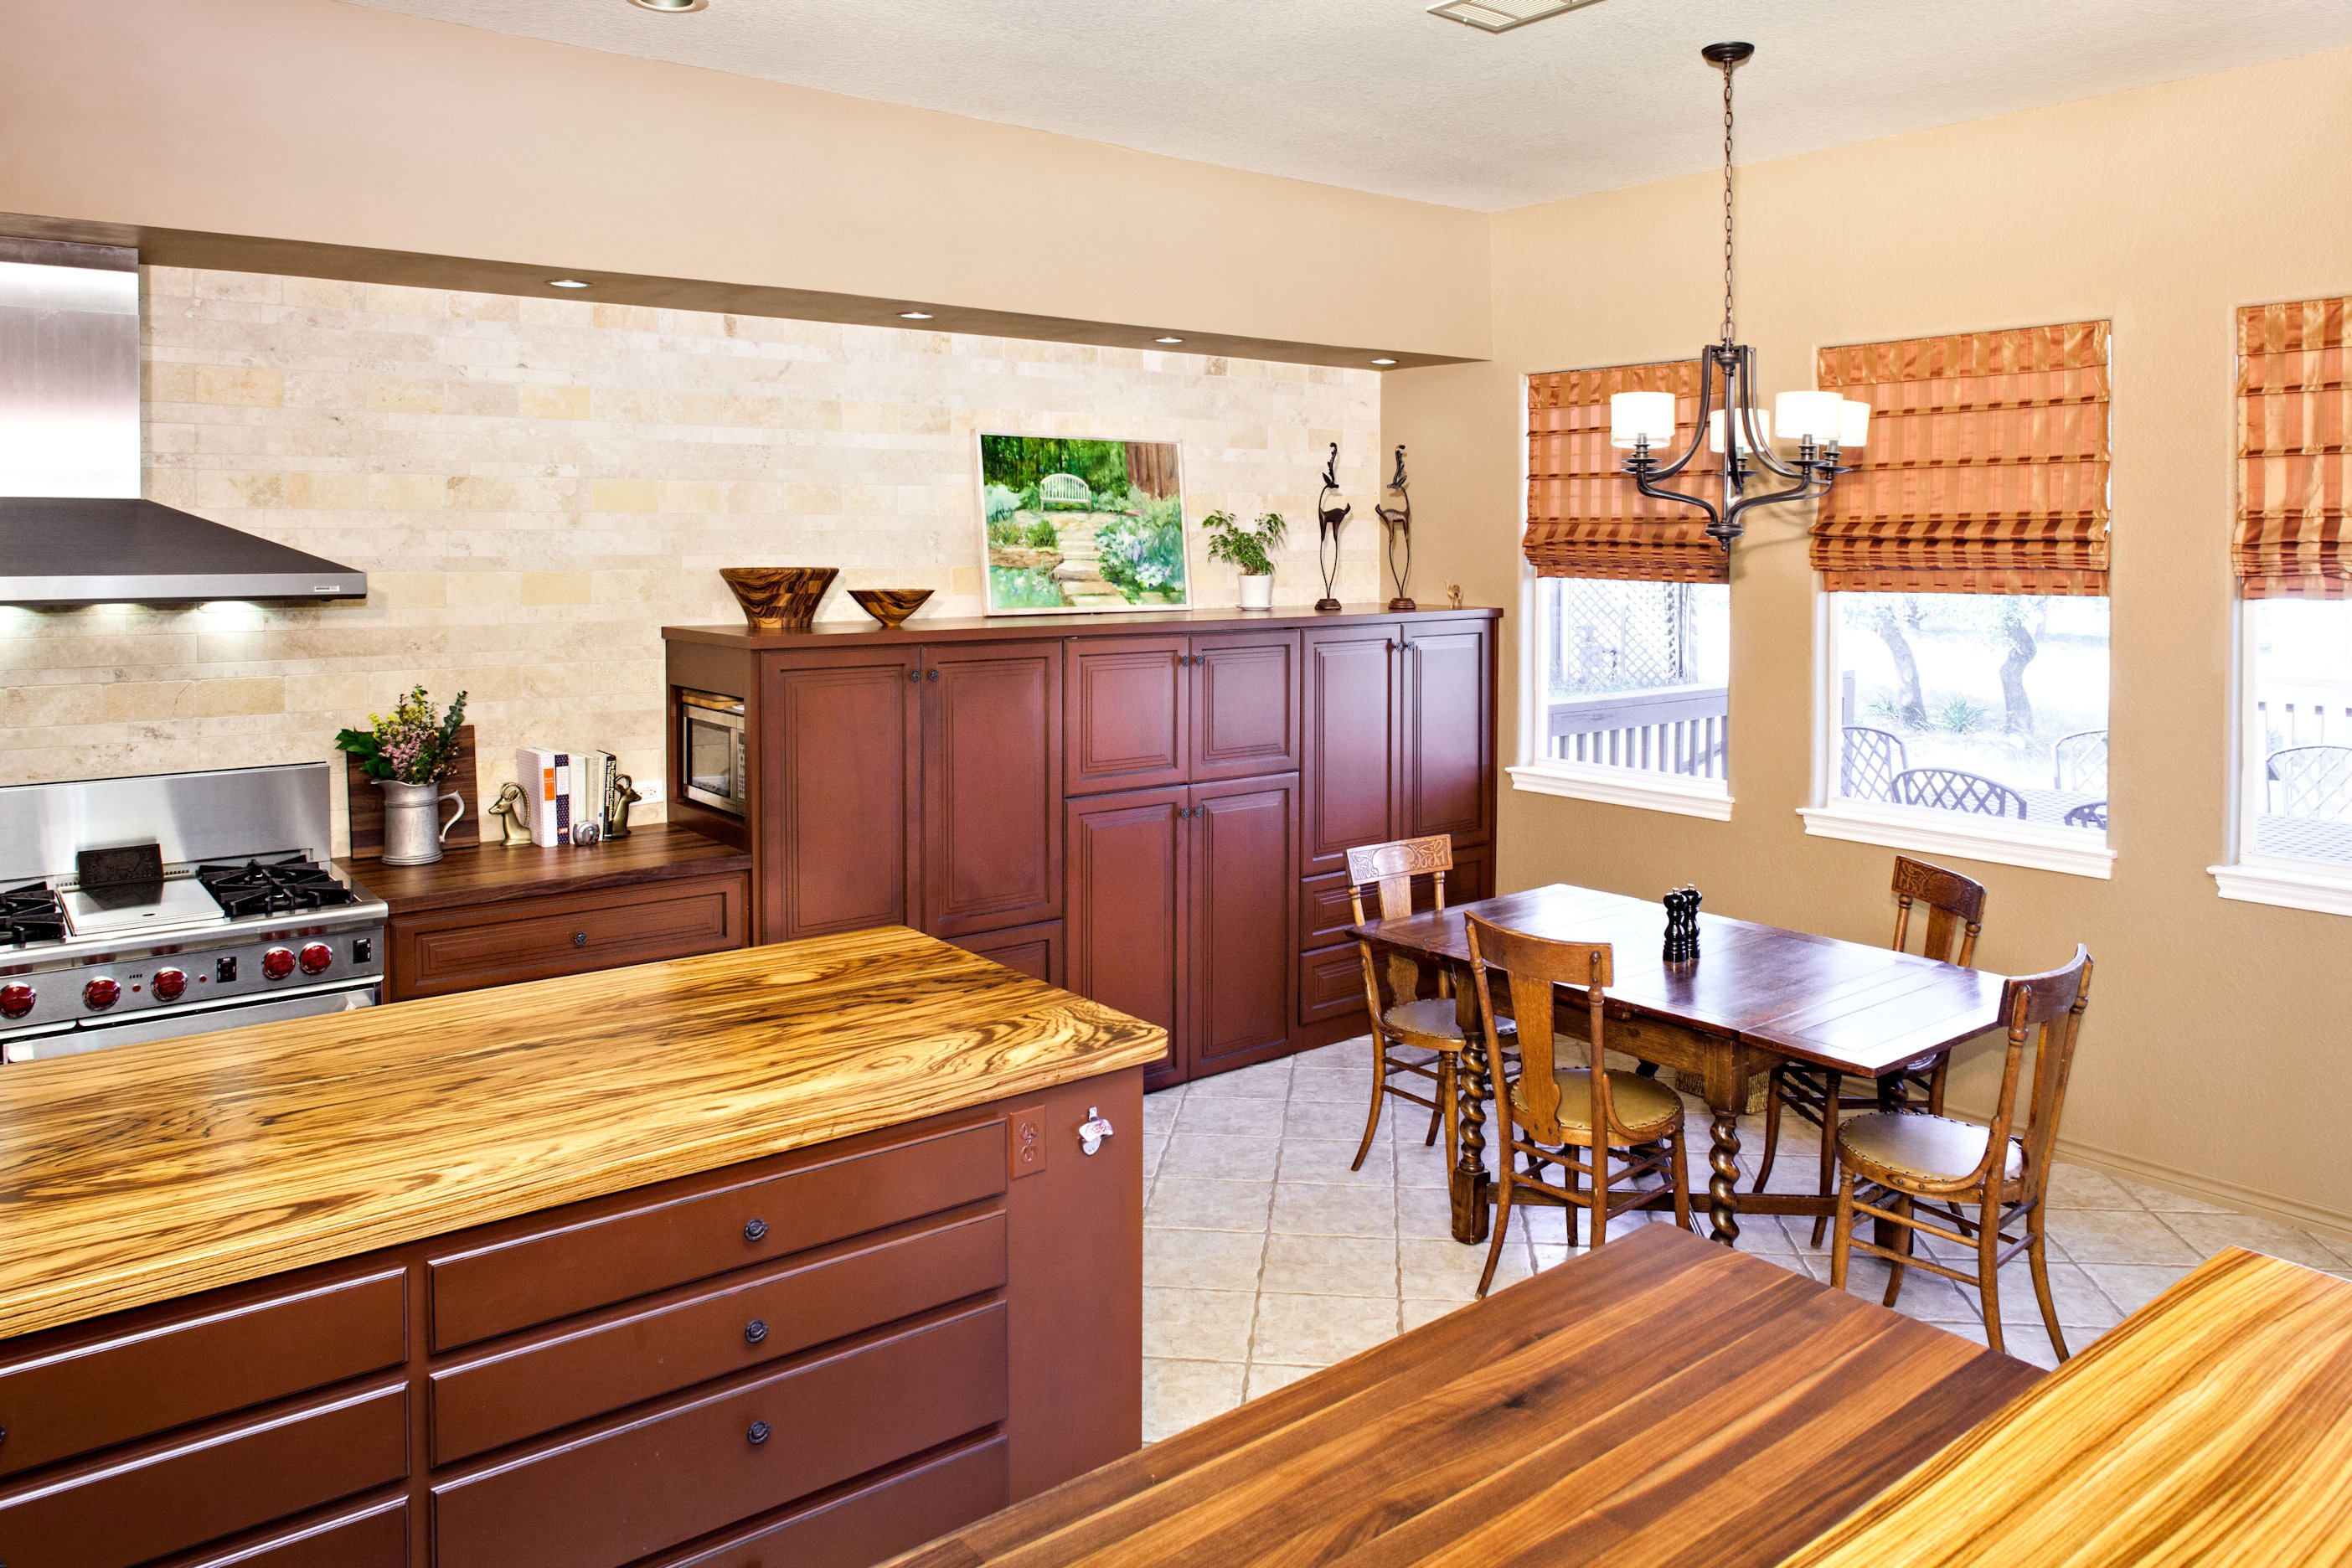 Zebrawood Face Grain Custom Wood Island Countertop